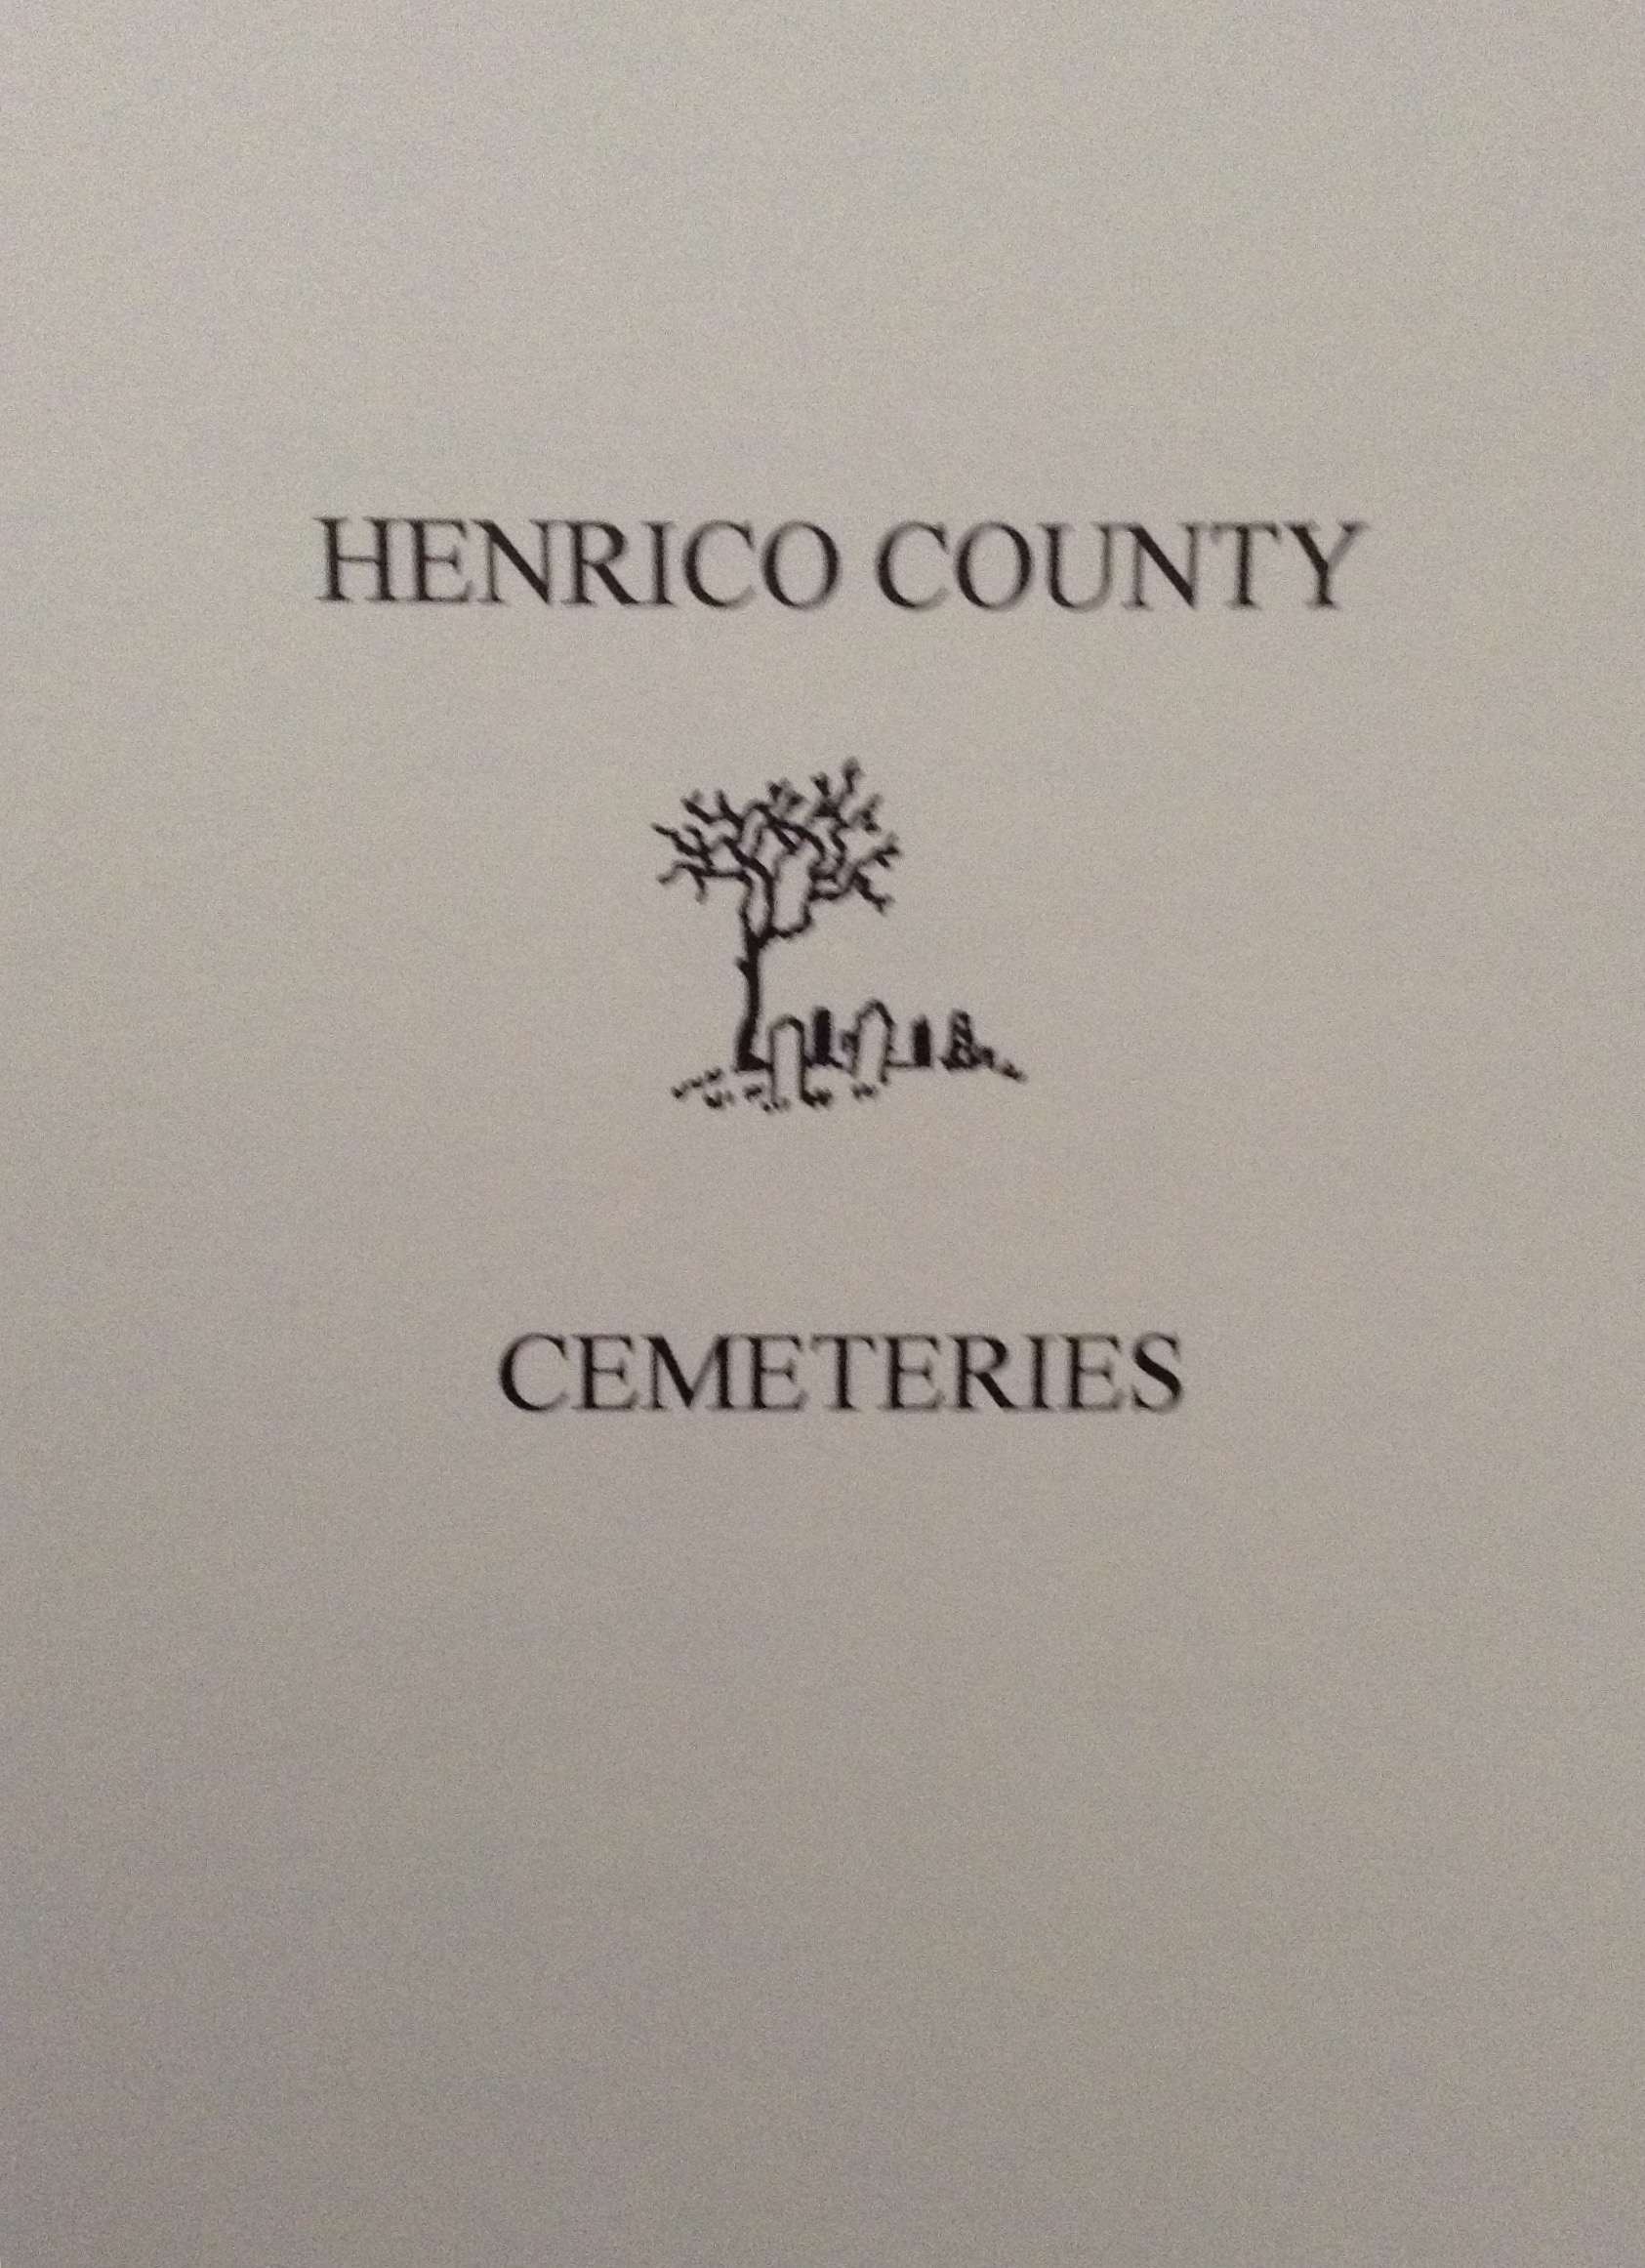 Henrico County Cemeteries book.